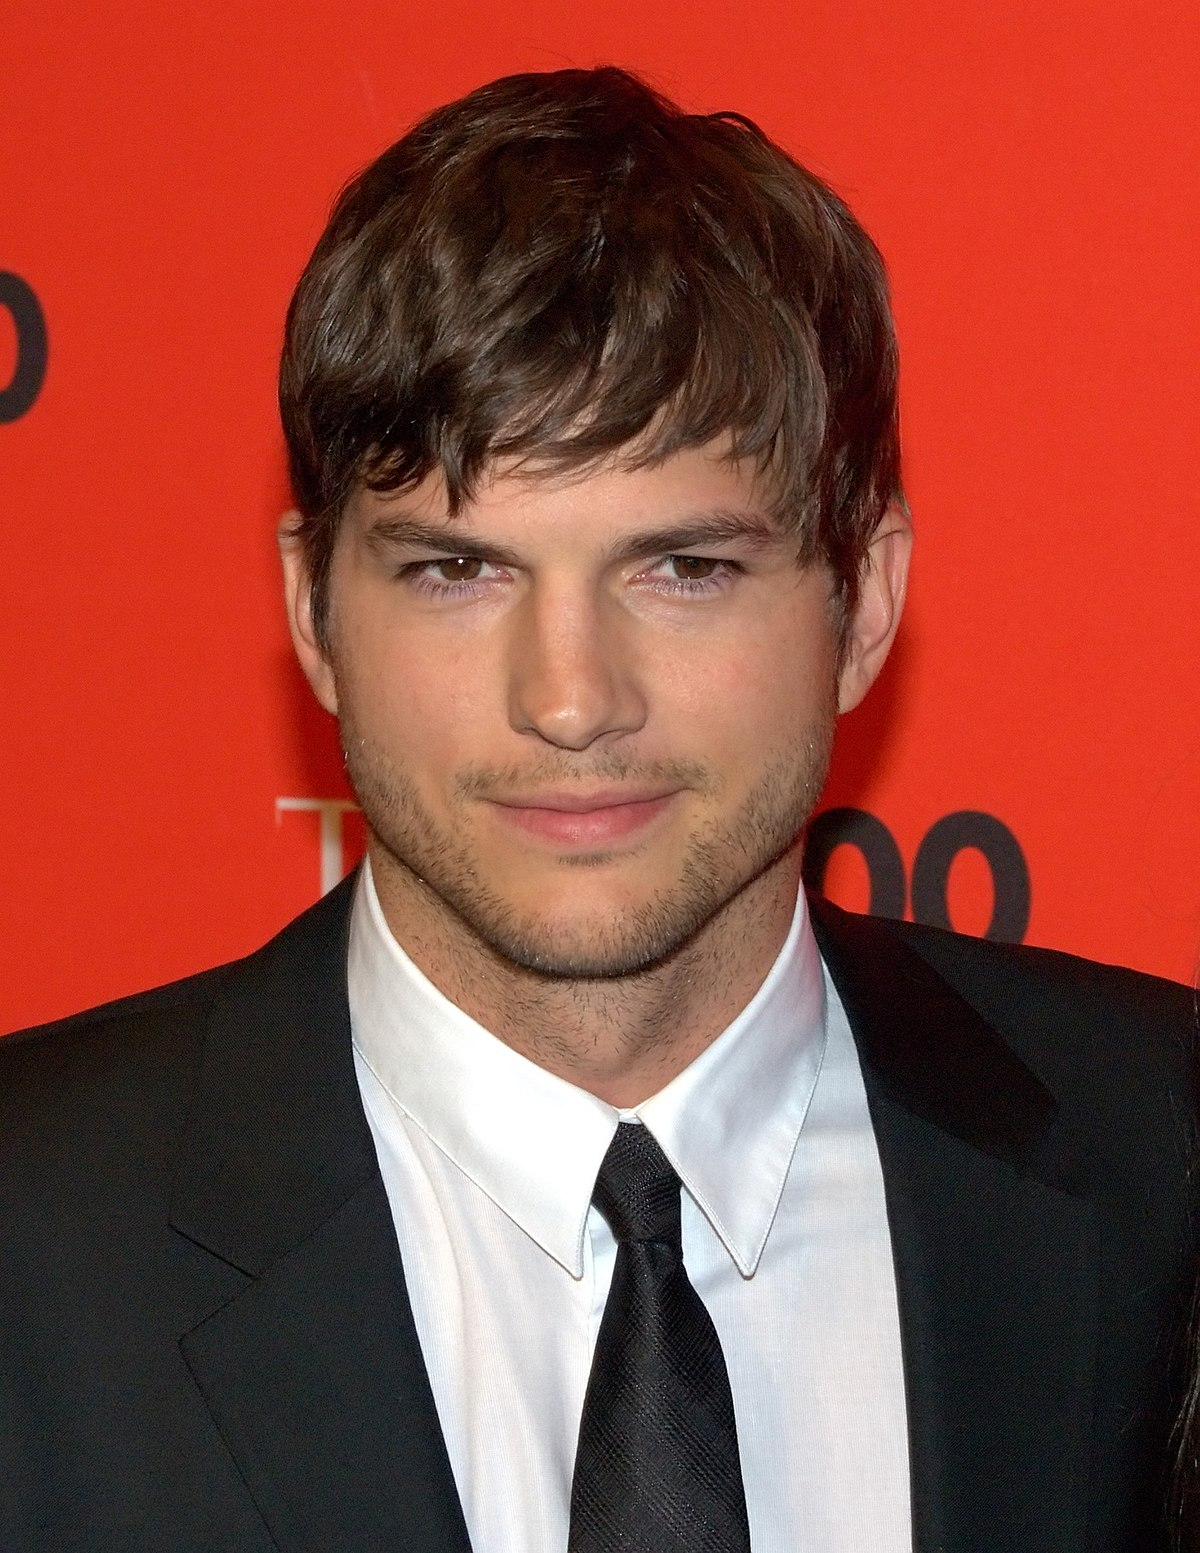 Ashton Kutcher - Wikipedia Ashton Kutcher